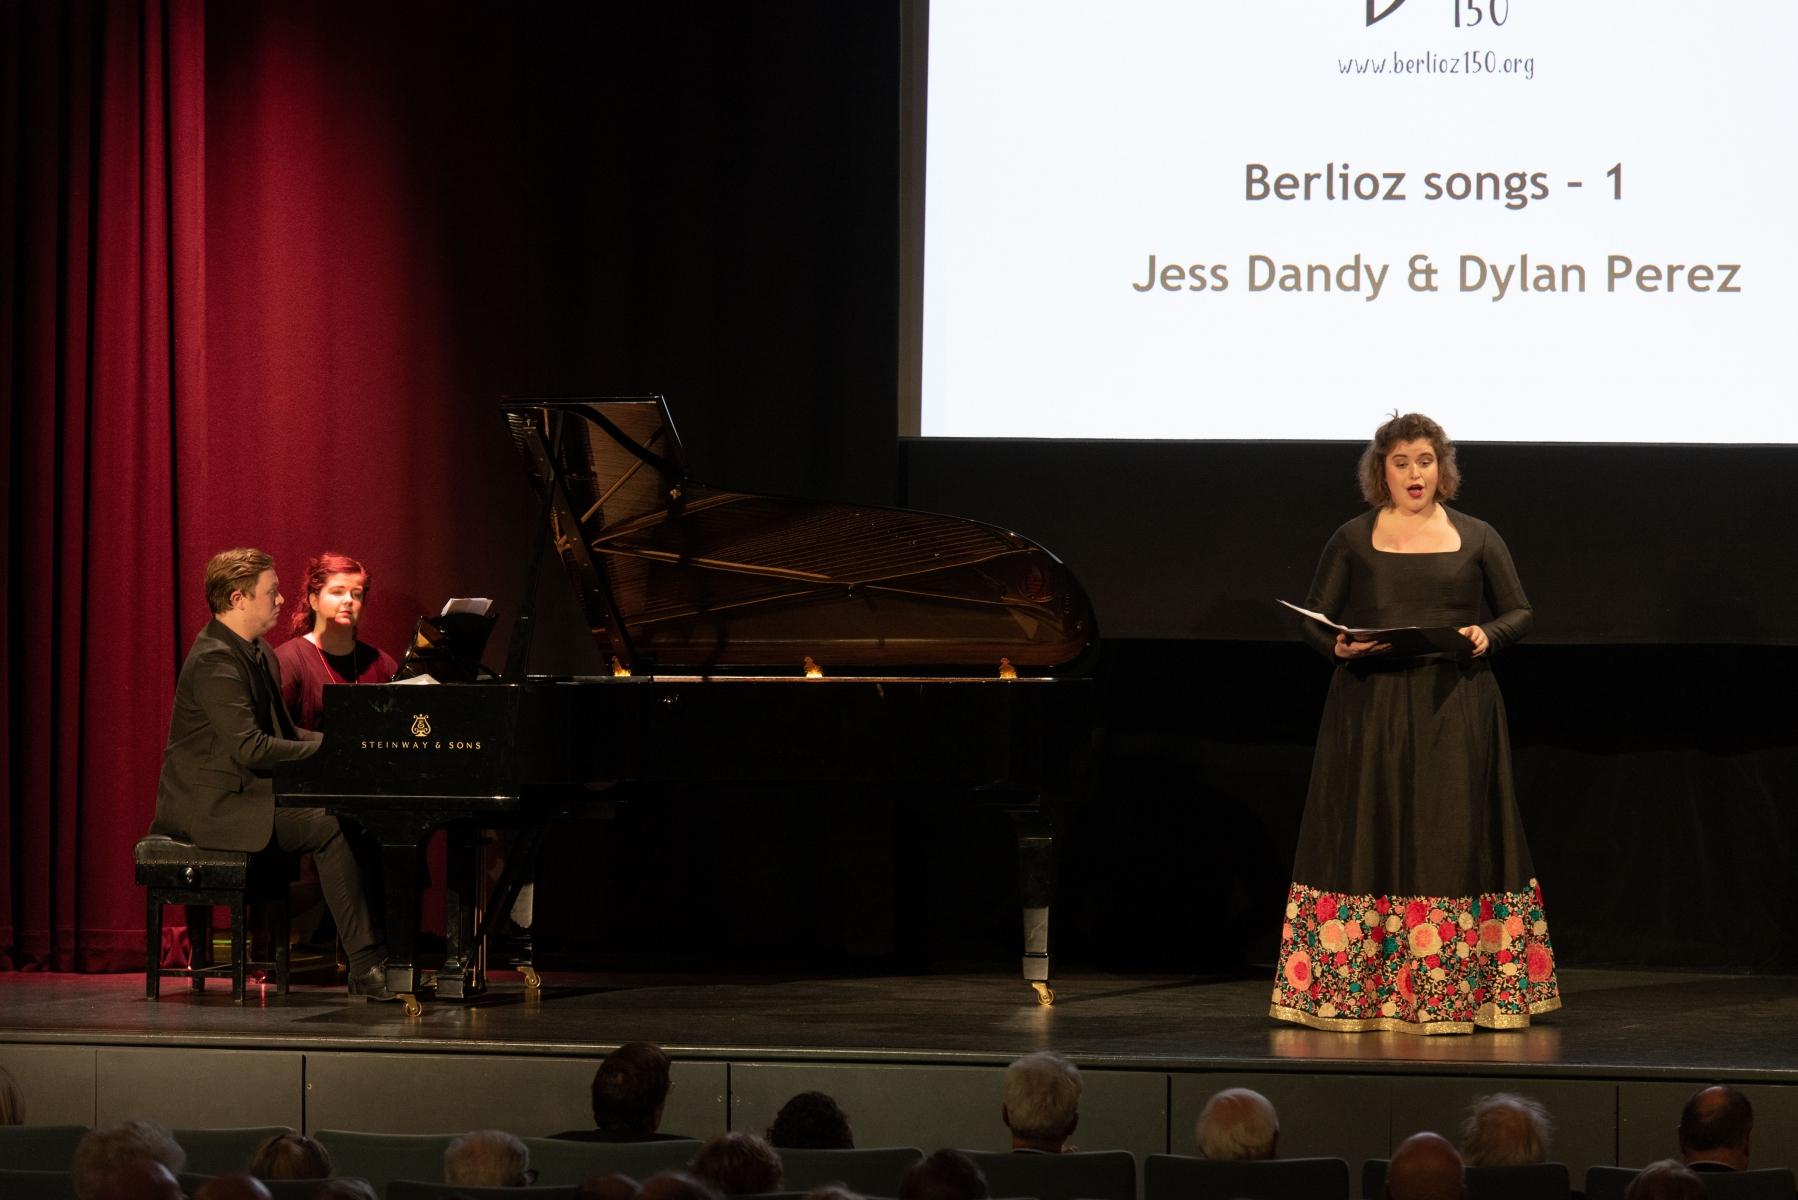 Jess Dandy performs with Dylan Perez on piano, at the Berlioz 150 Anniversary event